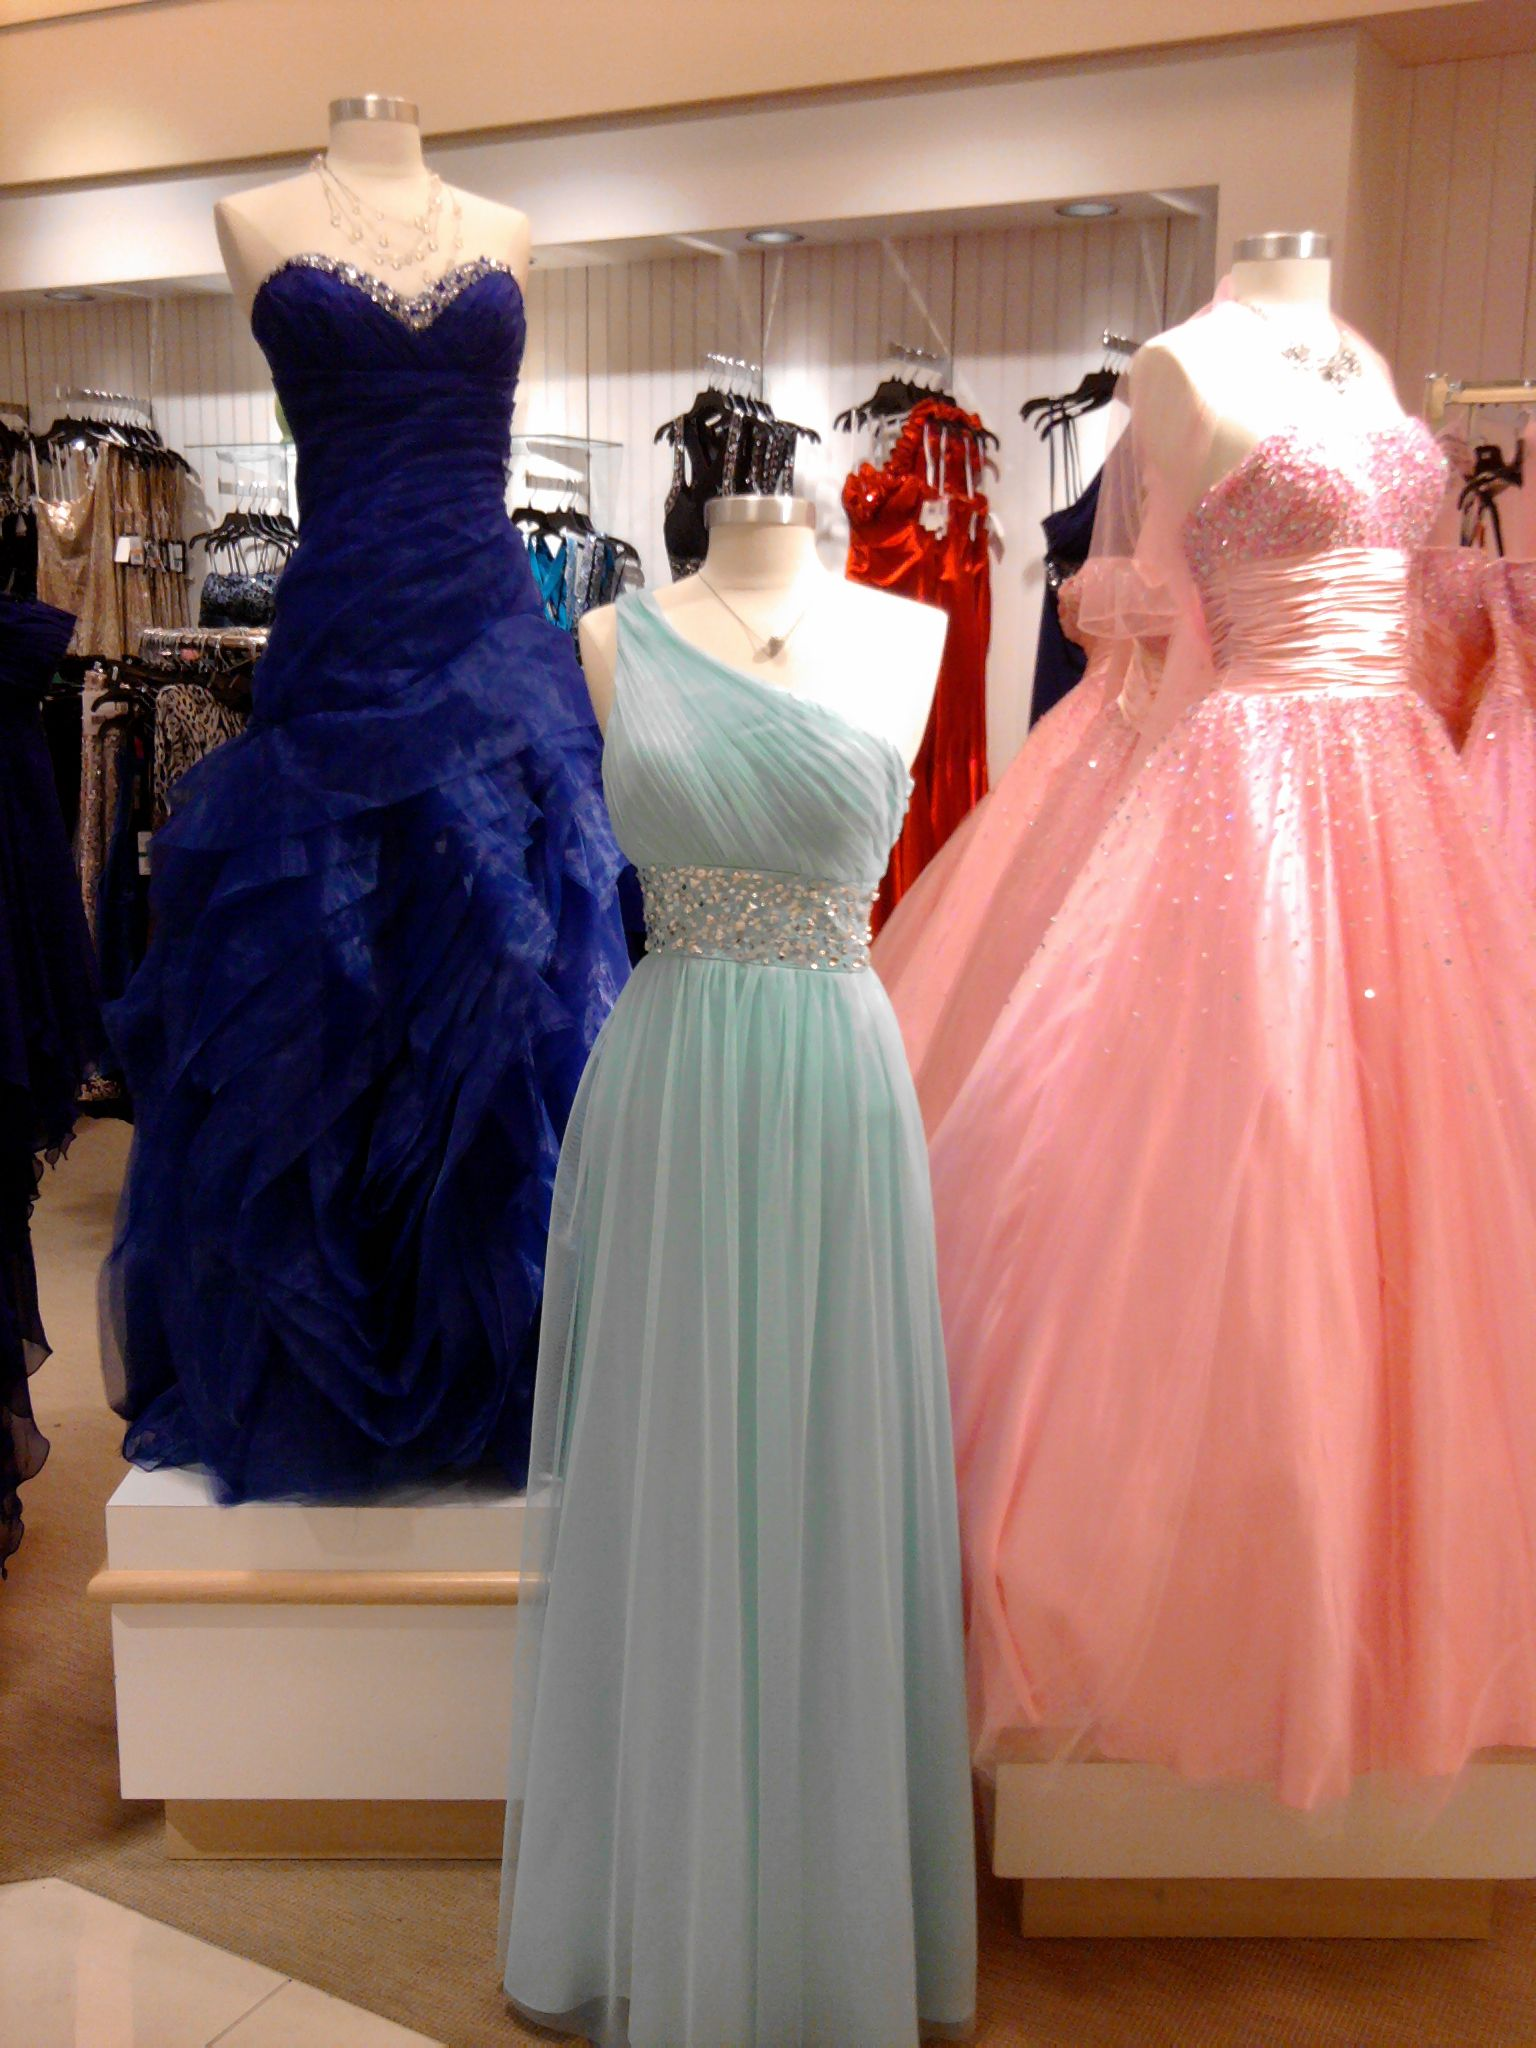 Prom Dresses From Von Maur Last Year Esp Love The Blue One On The Left Dream Dress Prom Dresses Ball Gowns [ 2048 x 1536 Pixel ]